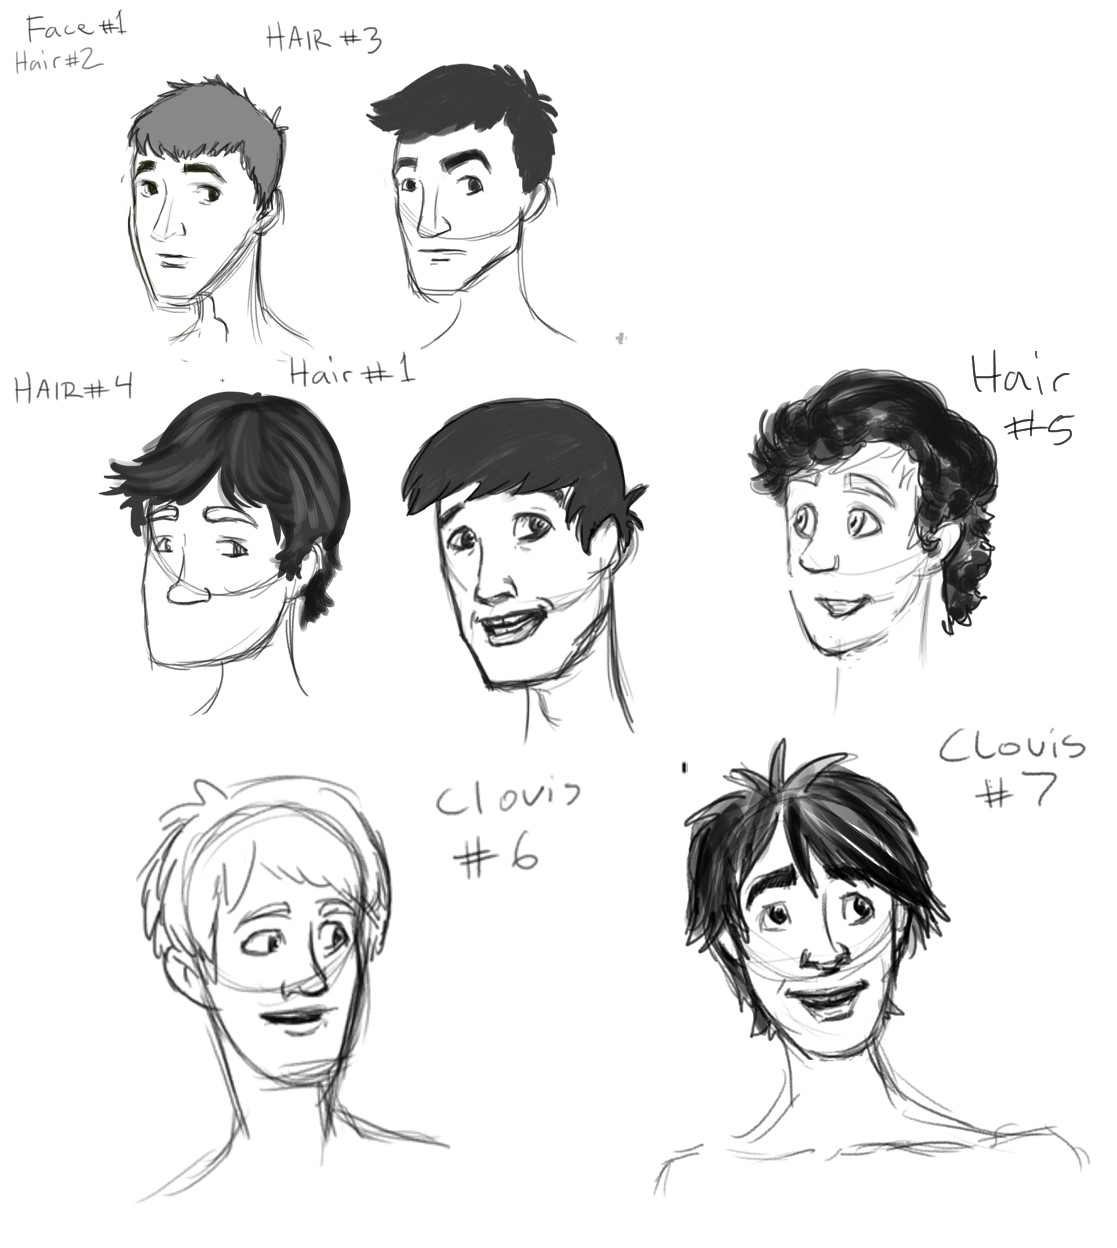 Clovis_Hair_and_Face_conceptArt_cropped.jpeg